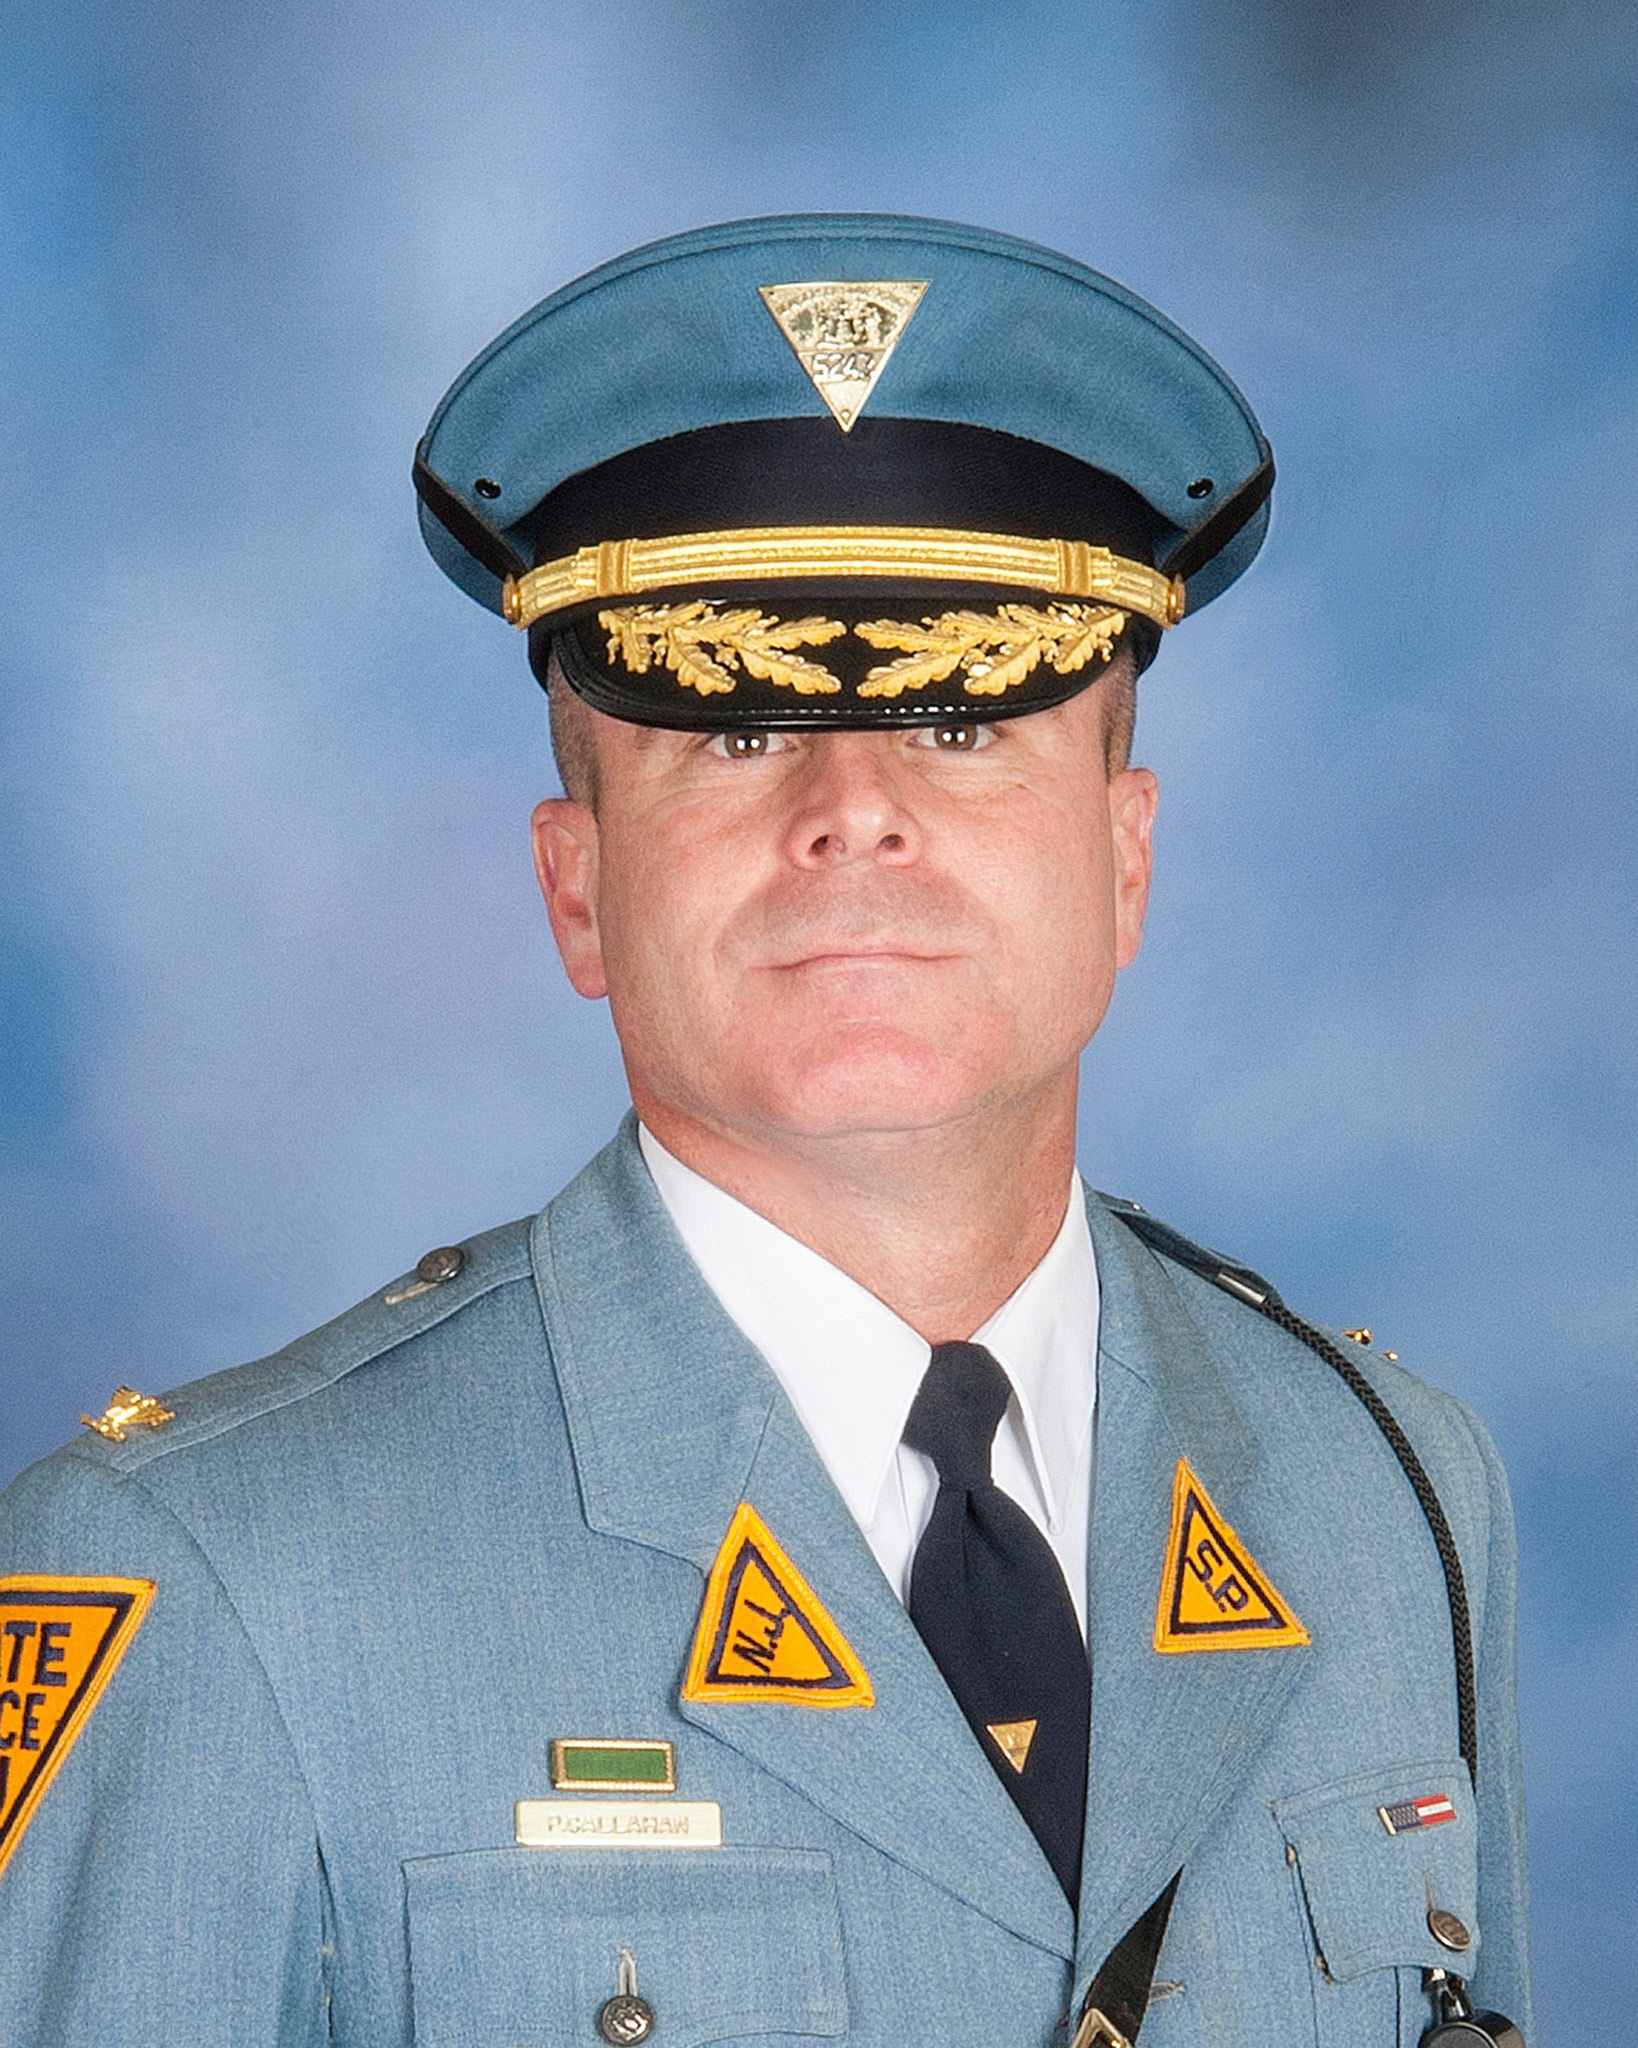 NJSP: Statement from Colonel Callahan